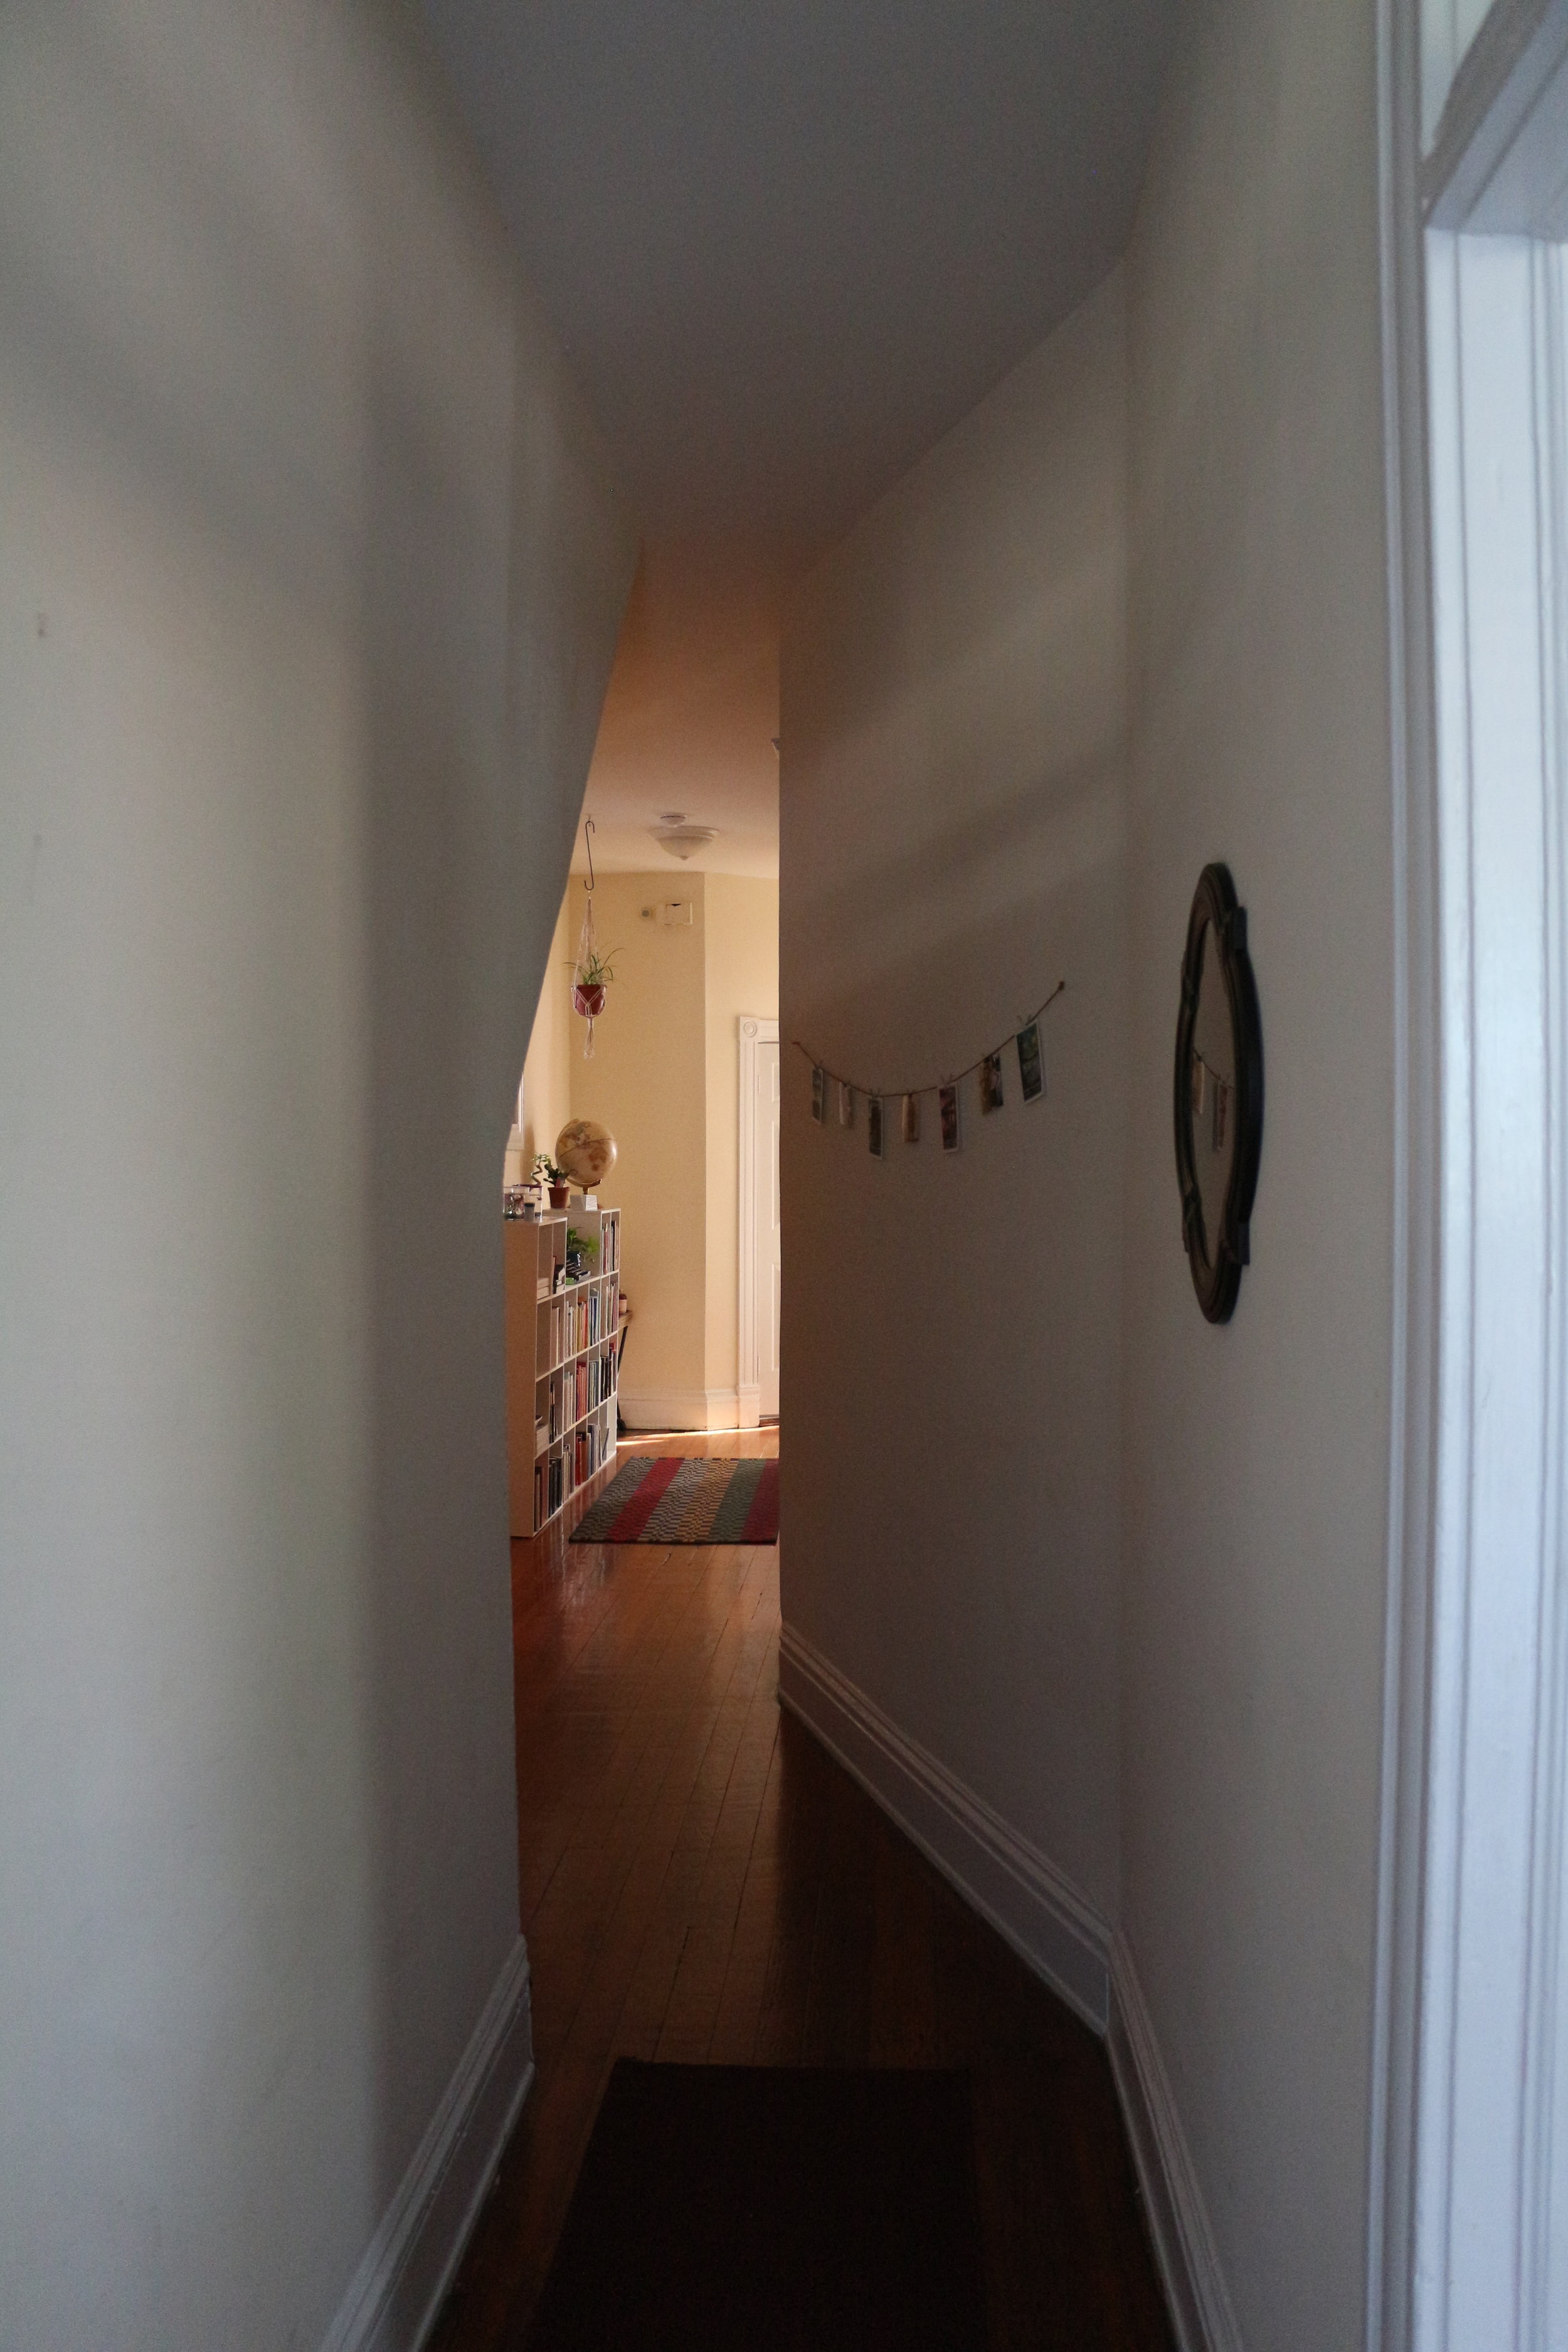 The view down the hallway from the front door. (living room is just to the right)